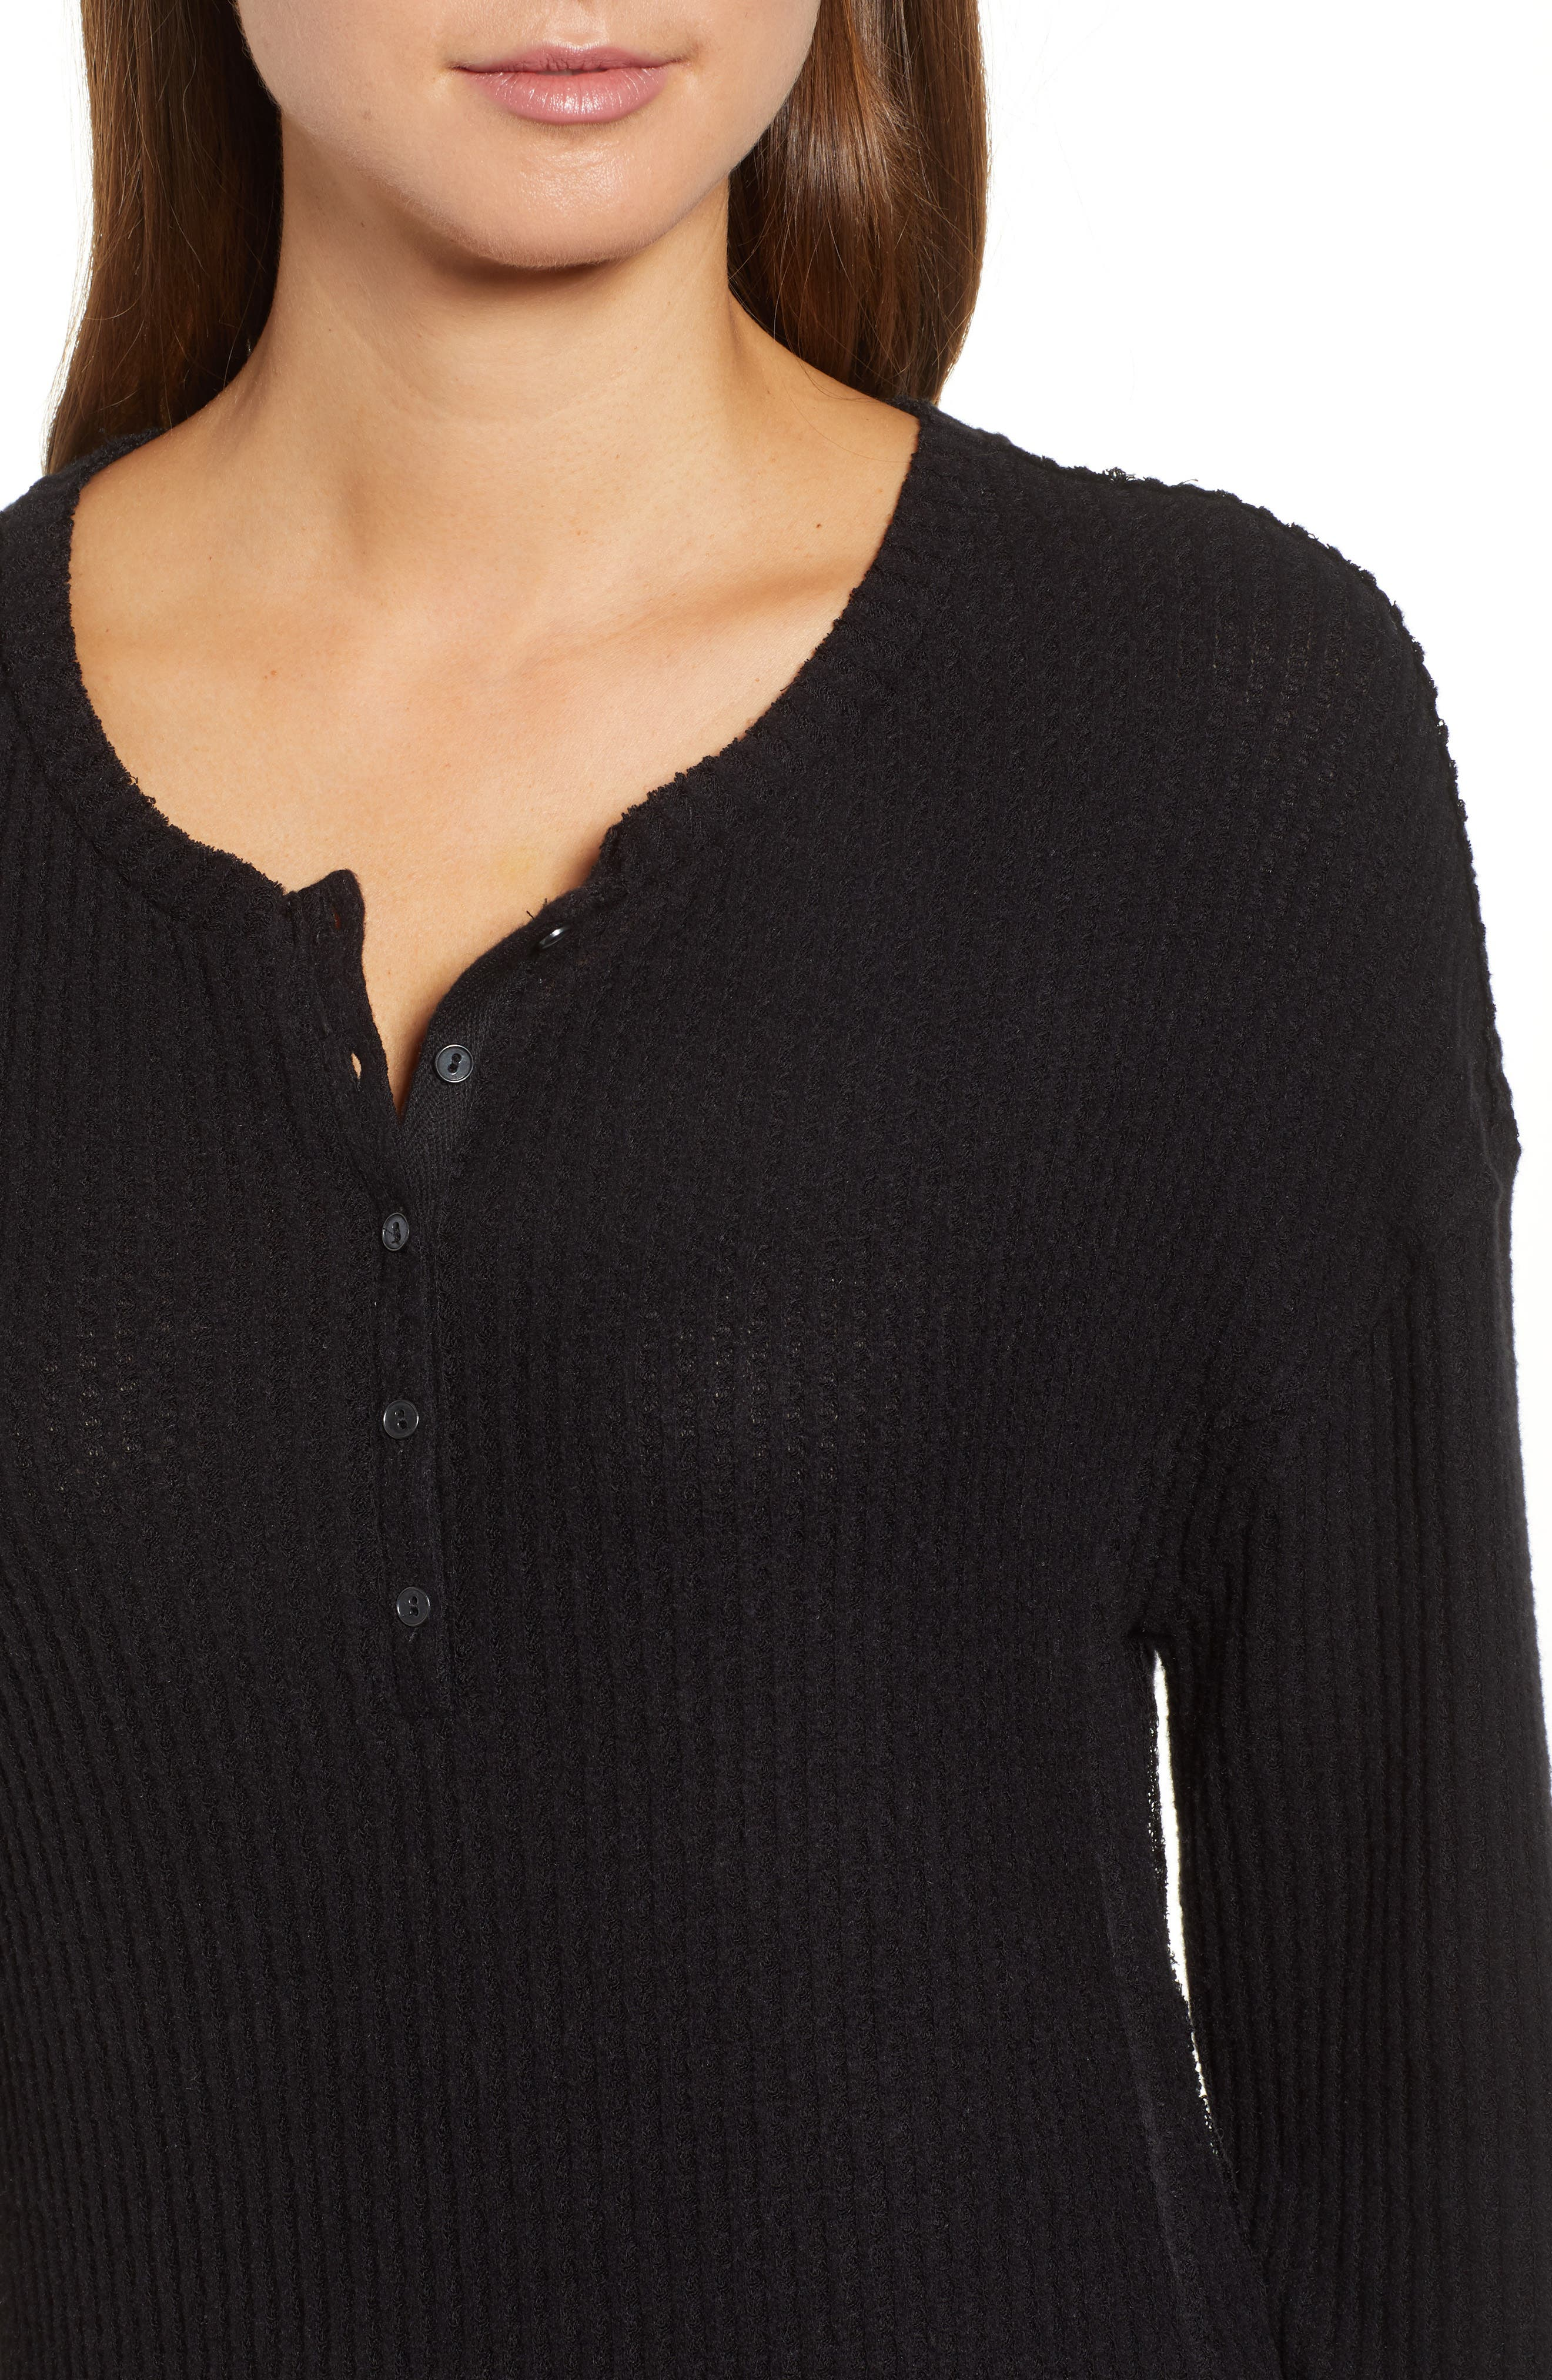 Thermal Henley Top,                             Alternate thumbnail 4, color,                             001